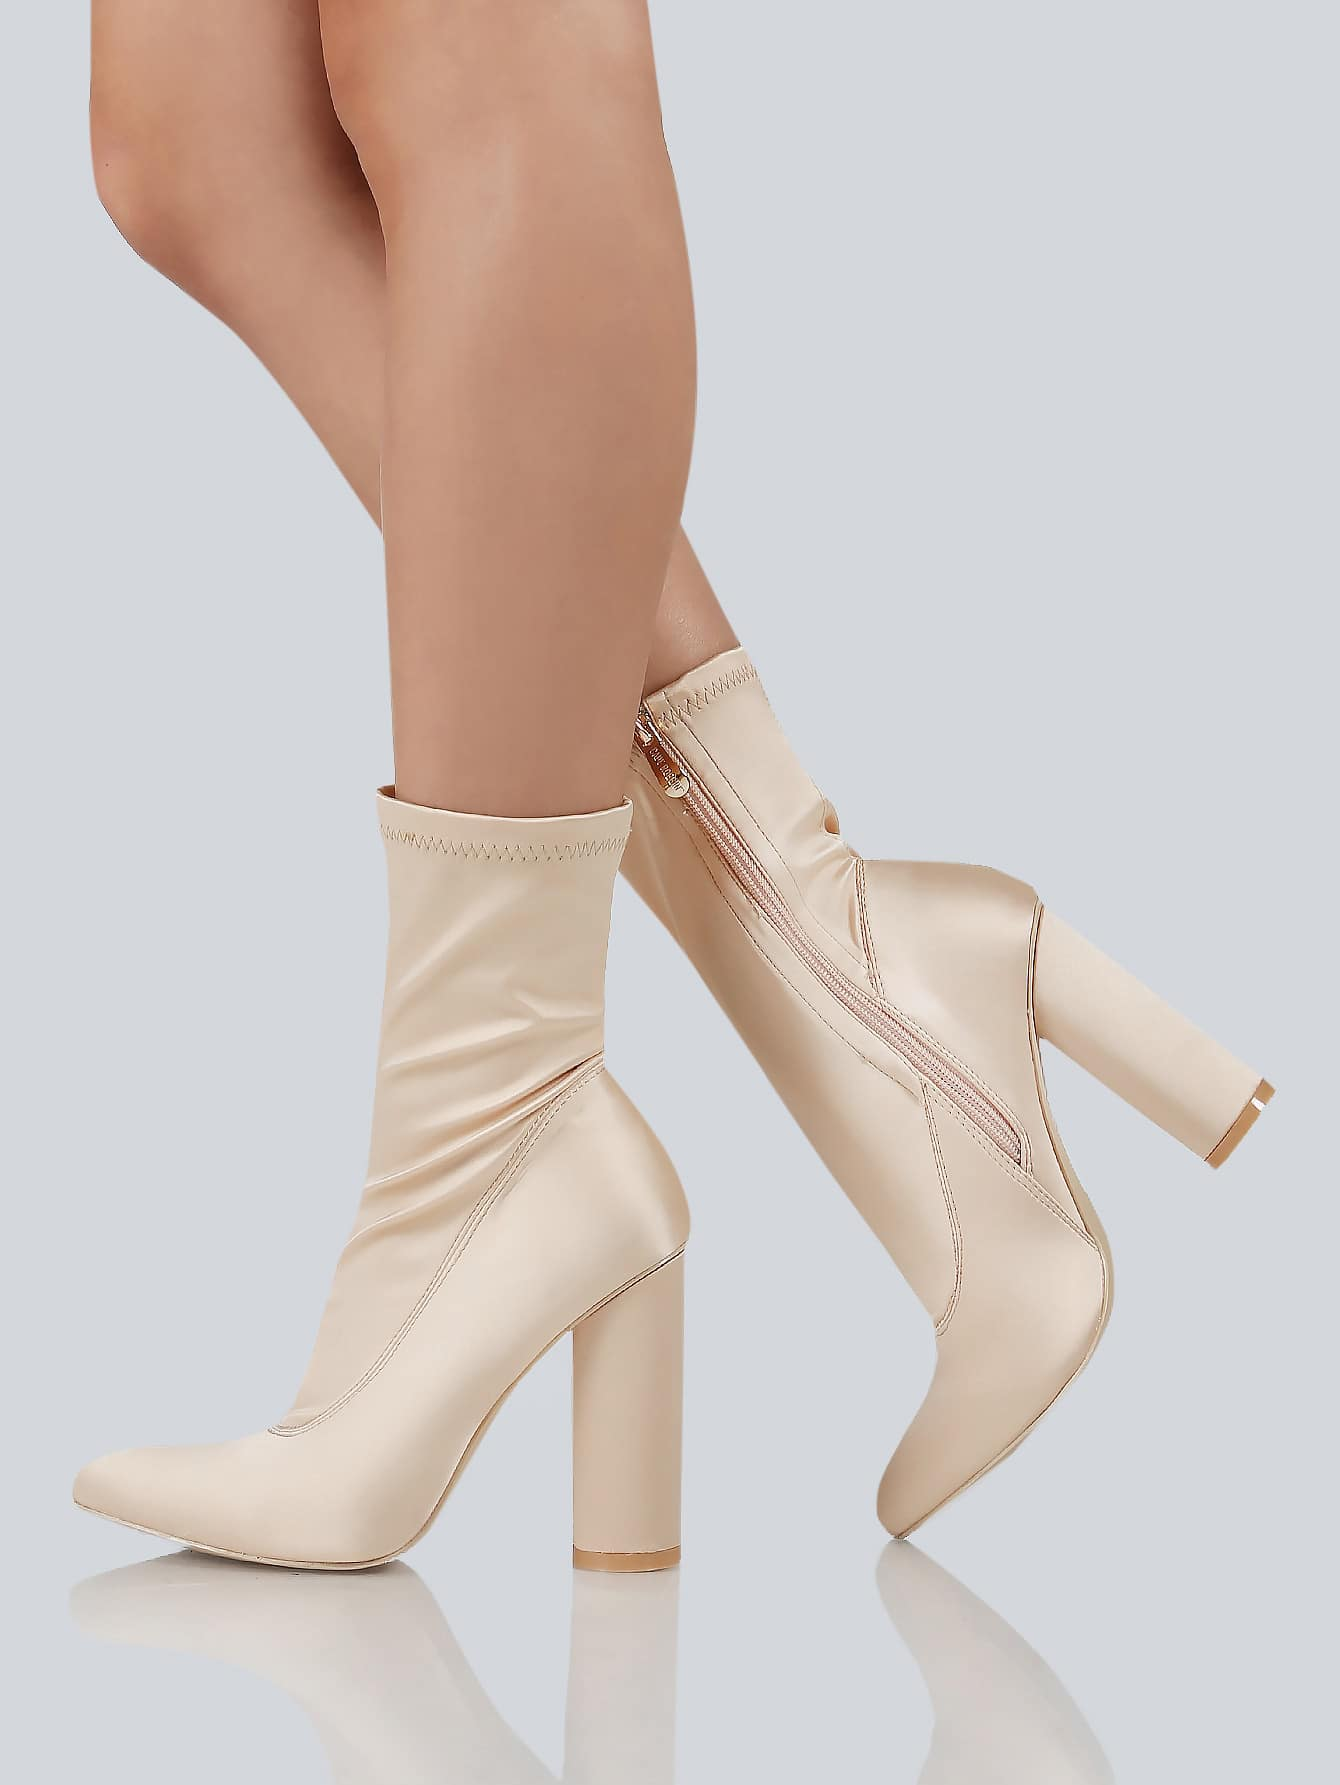 Pointy Toe Cylinder Heel Boots NUDE mmcboot-paw55-nude